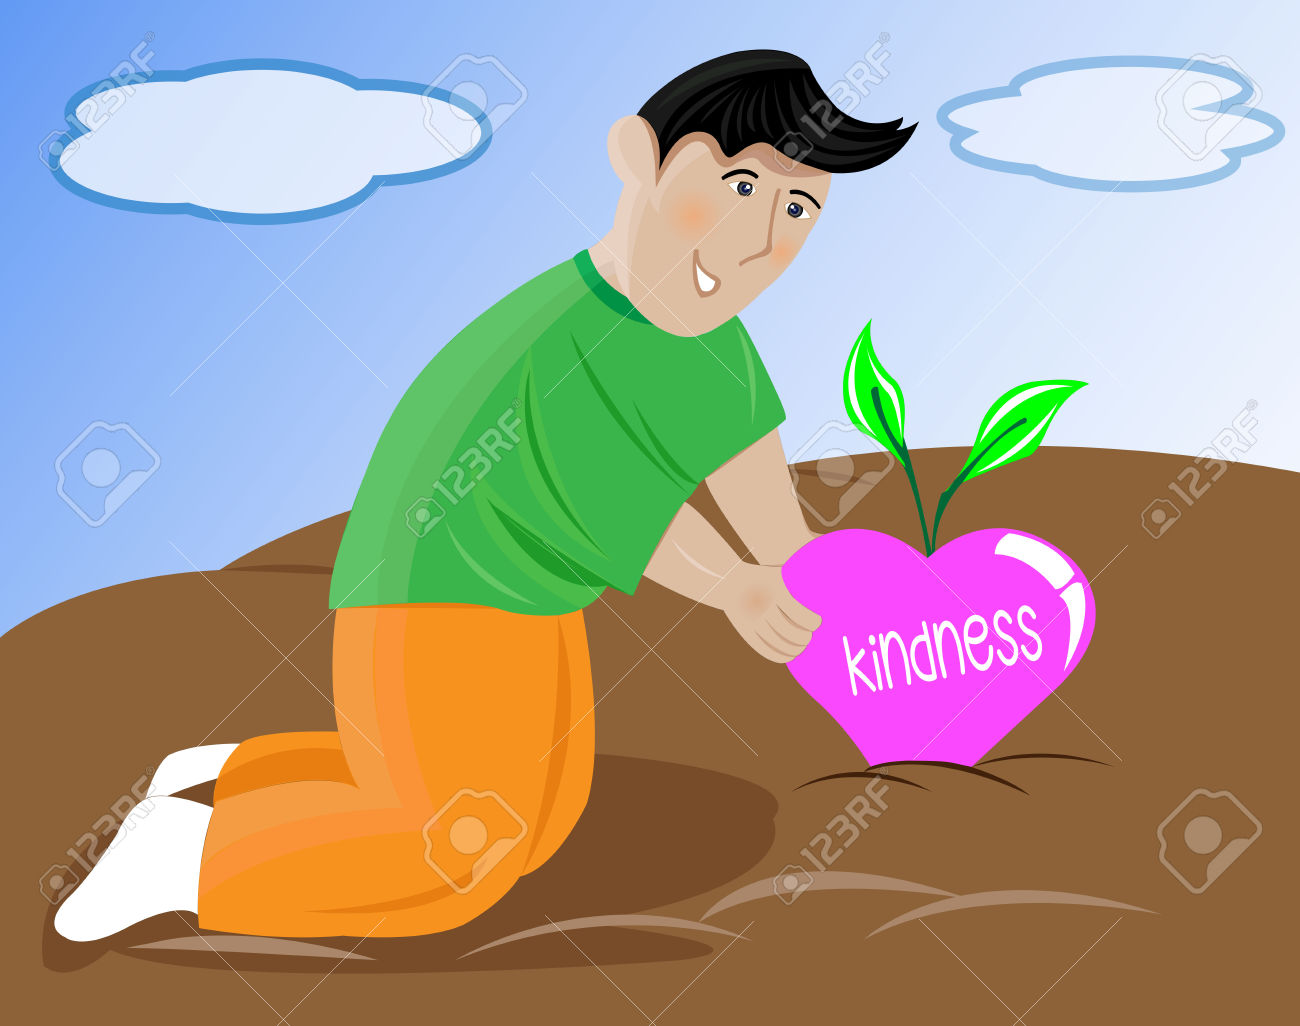 People showing kindness clipart vector transparent An Illustration Of A Young Man Harvesting Heart Shaped Fruit ... vector transparent